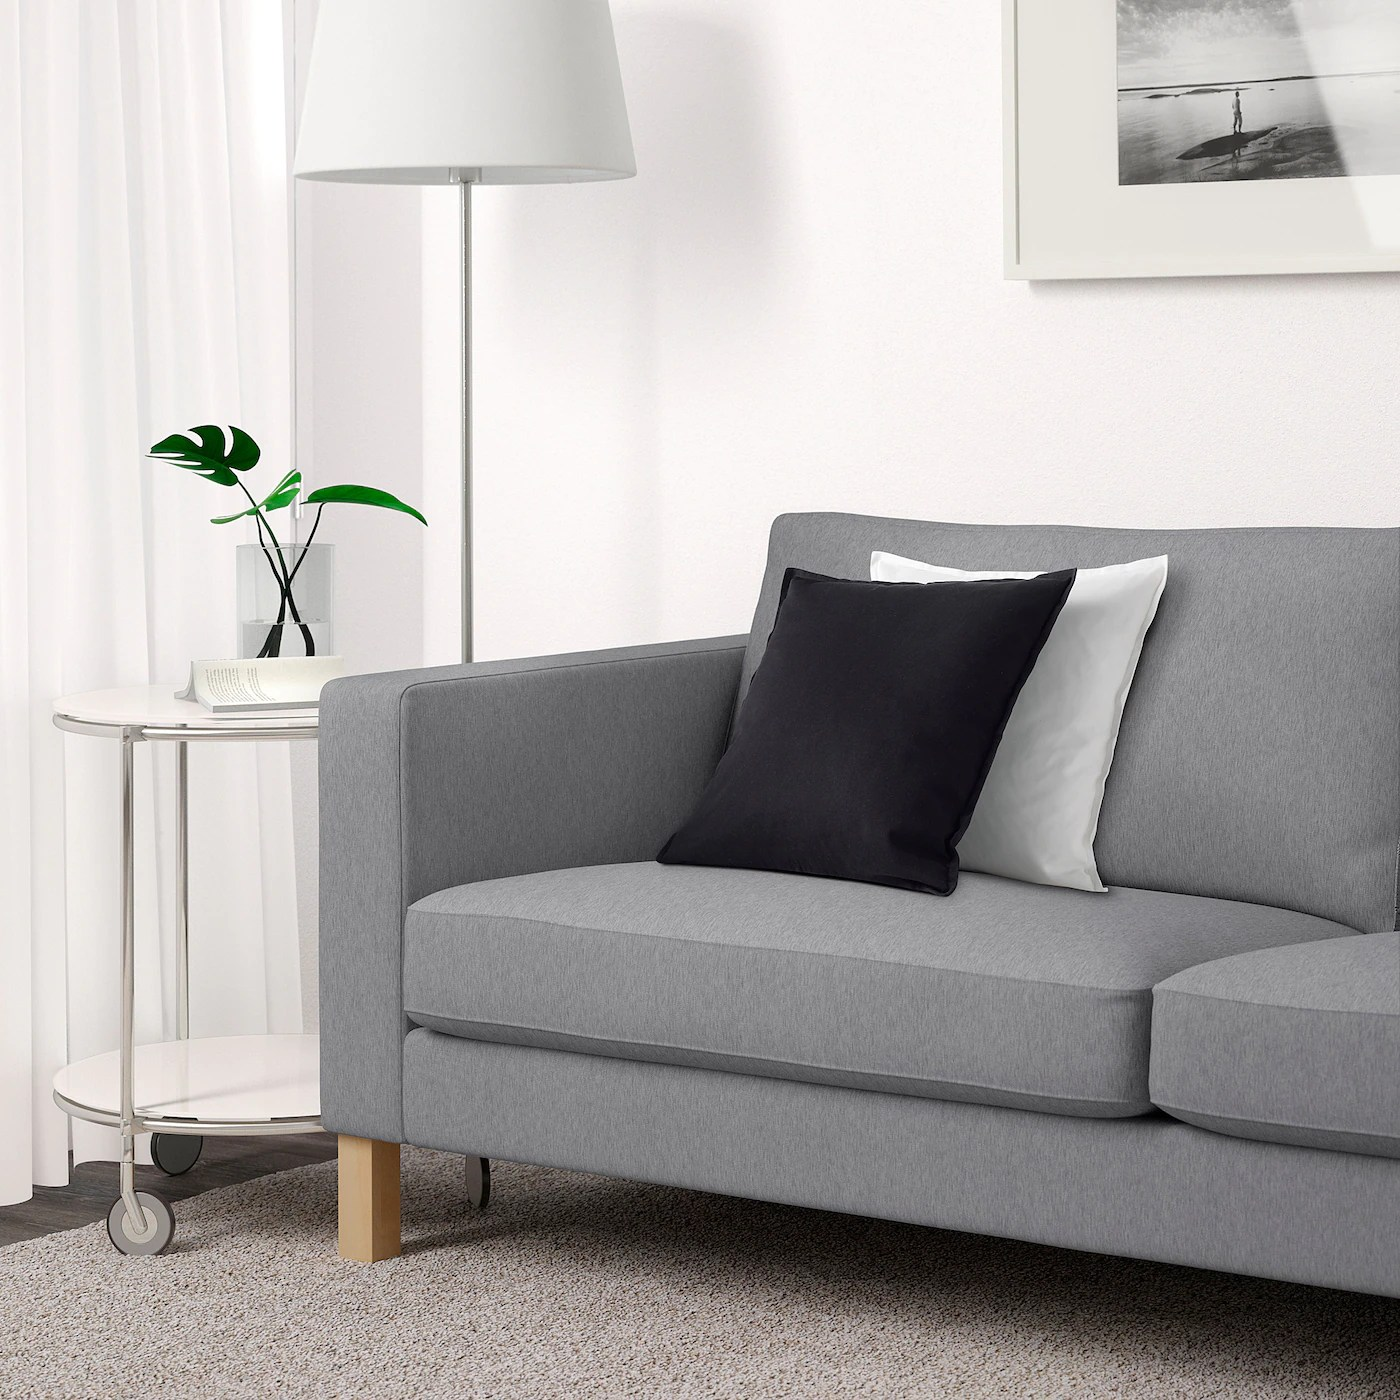 Sofa 2 Sitzer Ikea Karlstad Sofa, Knisa Light Gray - Ikea